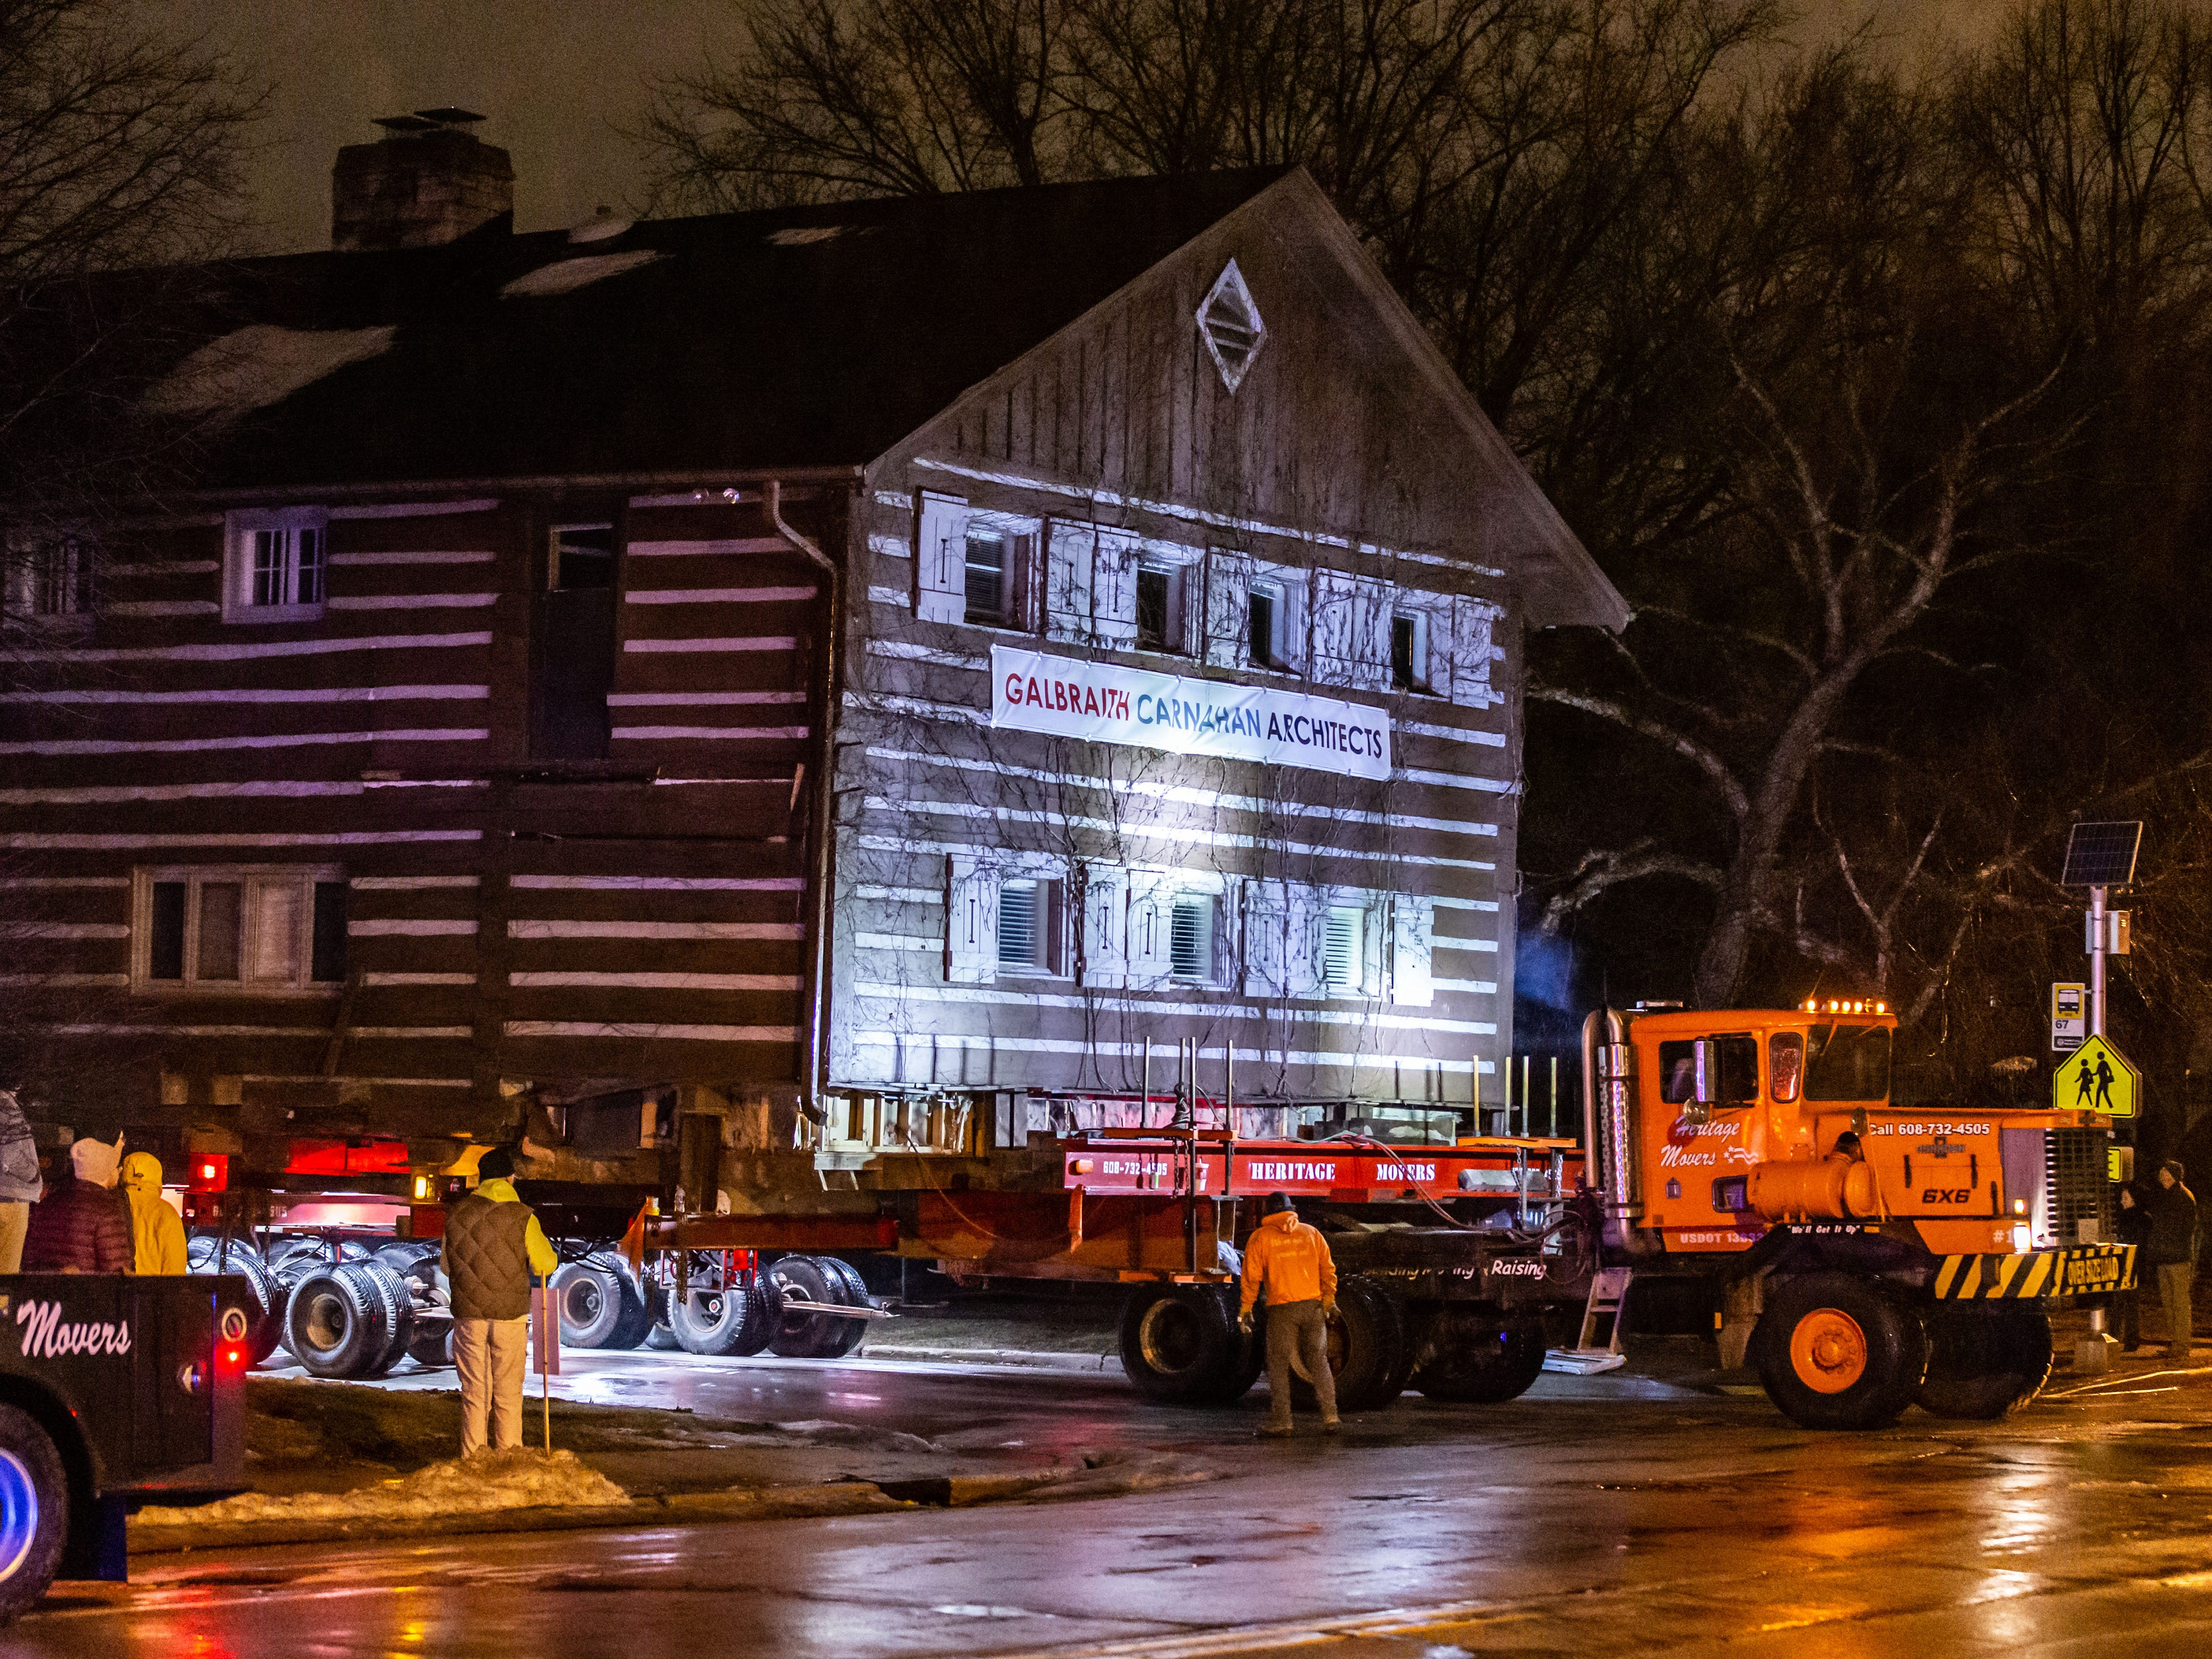 """The """"Tosa Log Cabin"""" turns onto N. Wauwatosa Ave. on it's journey to 6404 W. North Ave. on Wednesday evening, March 13, 2019. The cabin is being moved to make way for a three-story apartment complex called the Gallatin Apartments."""